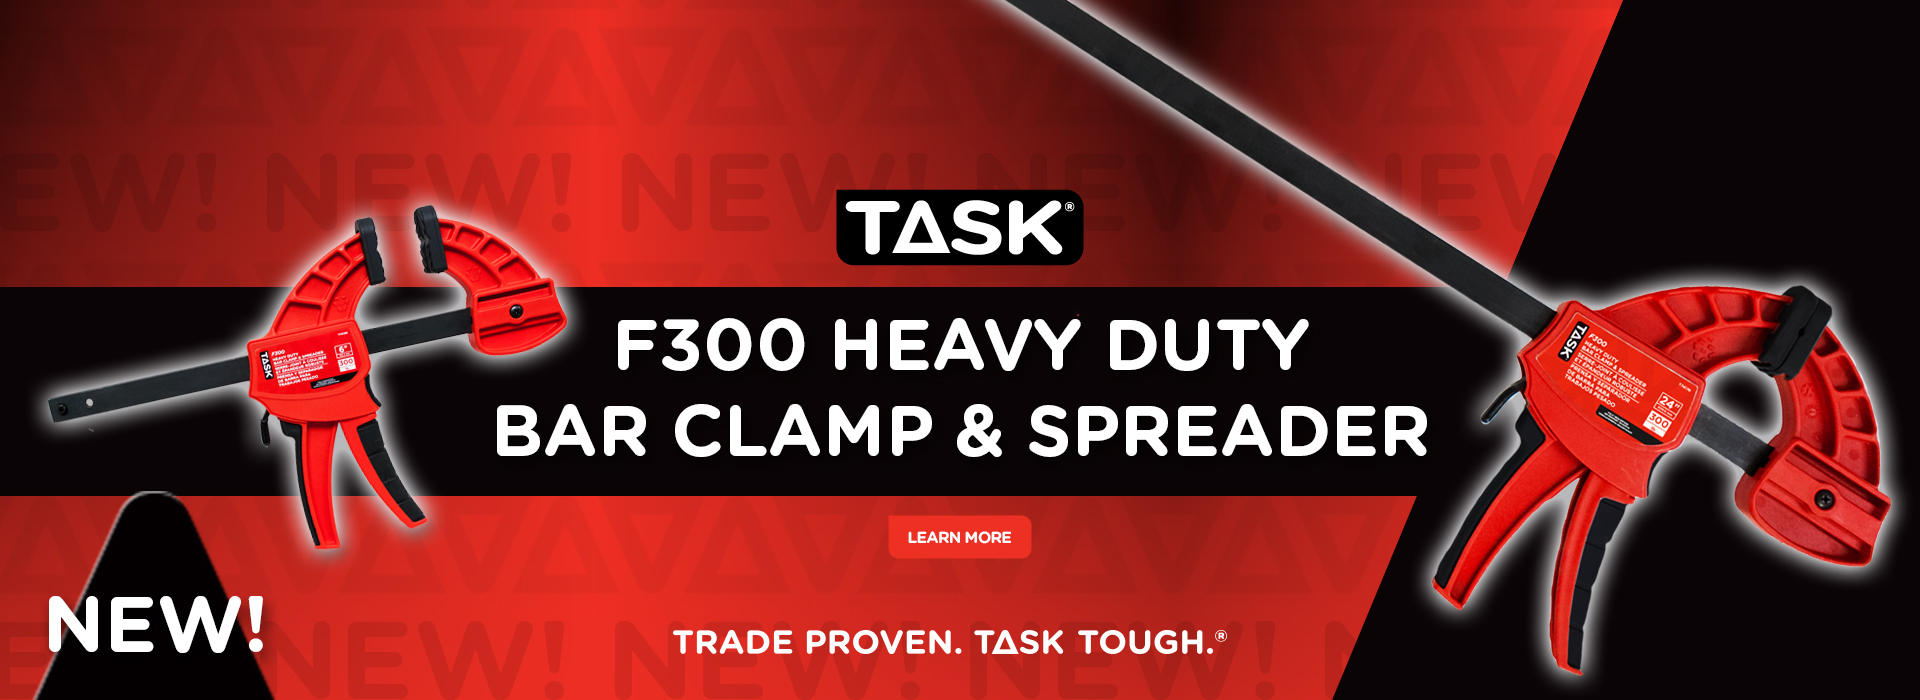 F300 Clamps